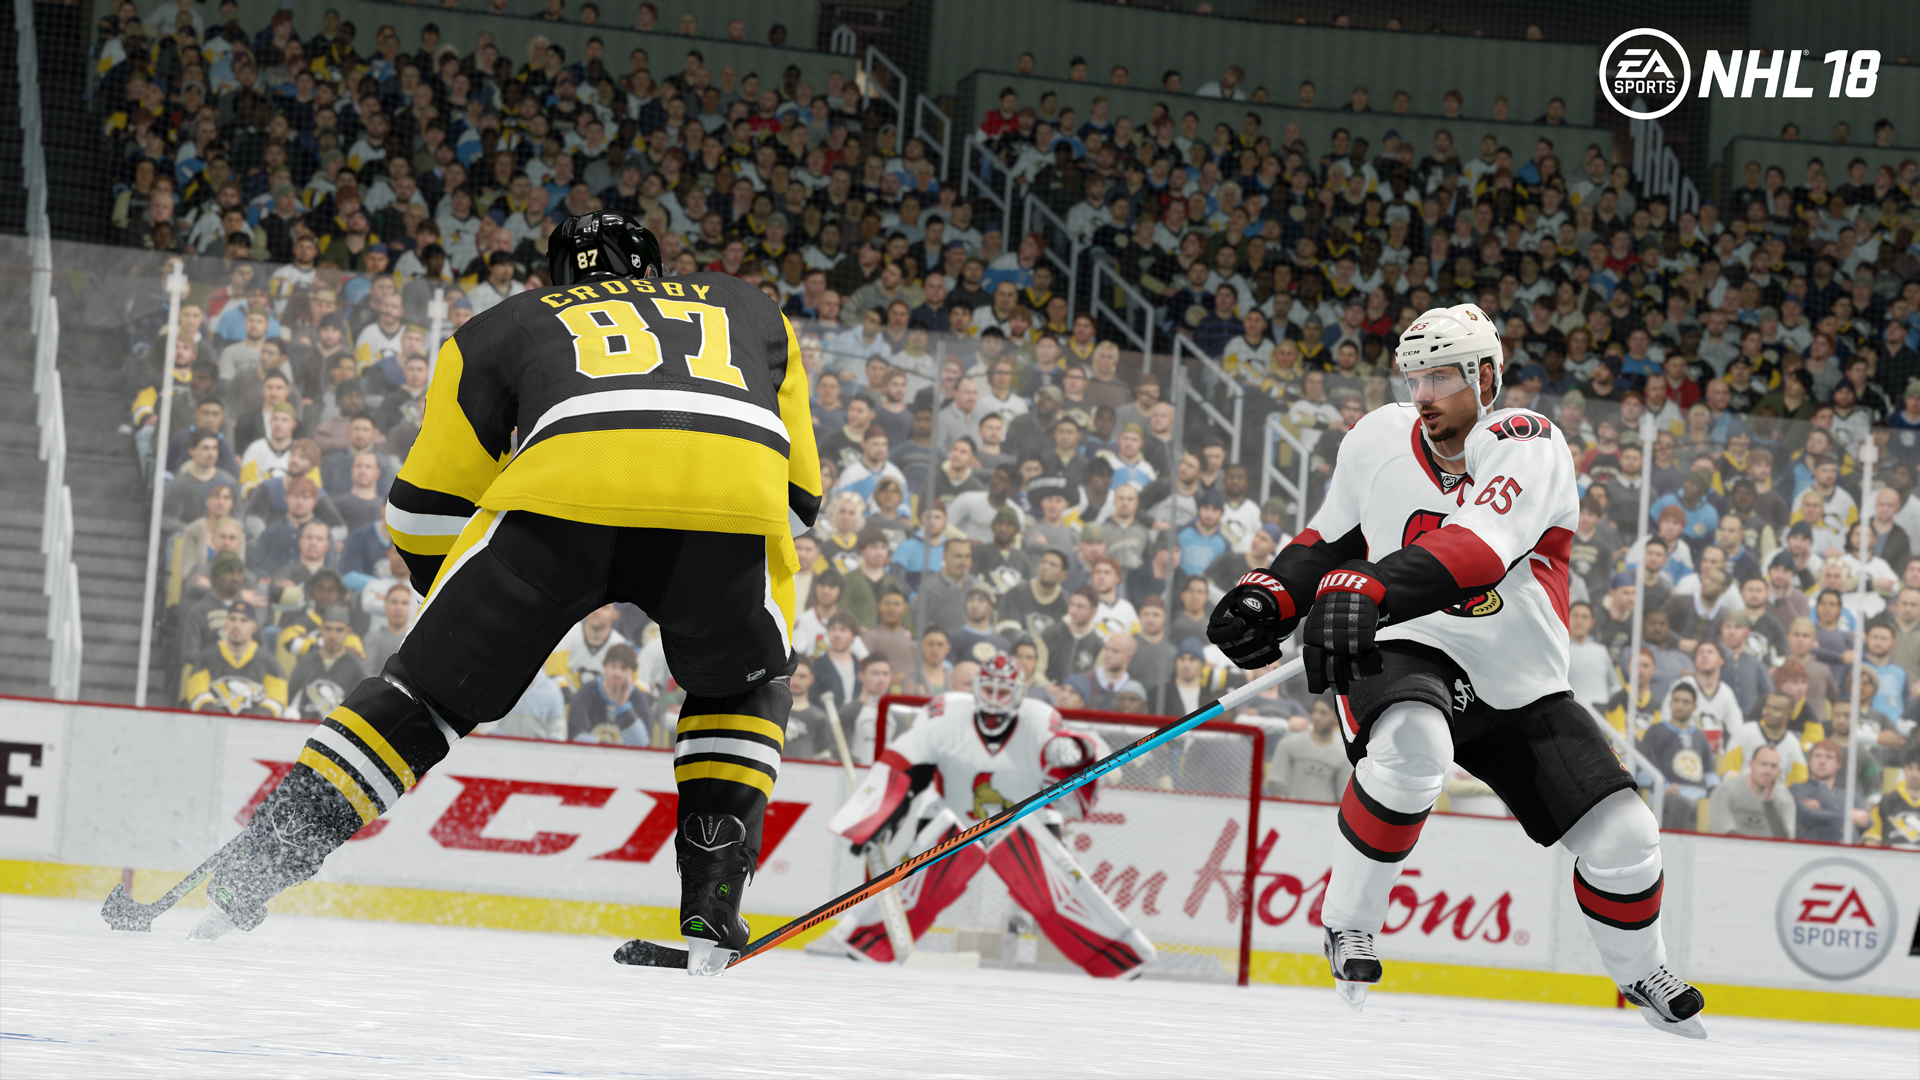 NHL18-Defensive Skill Stick-Karlsson_1920x1080